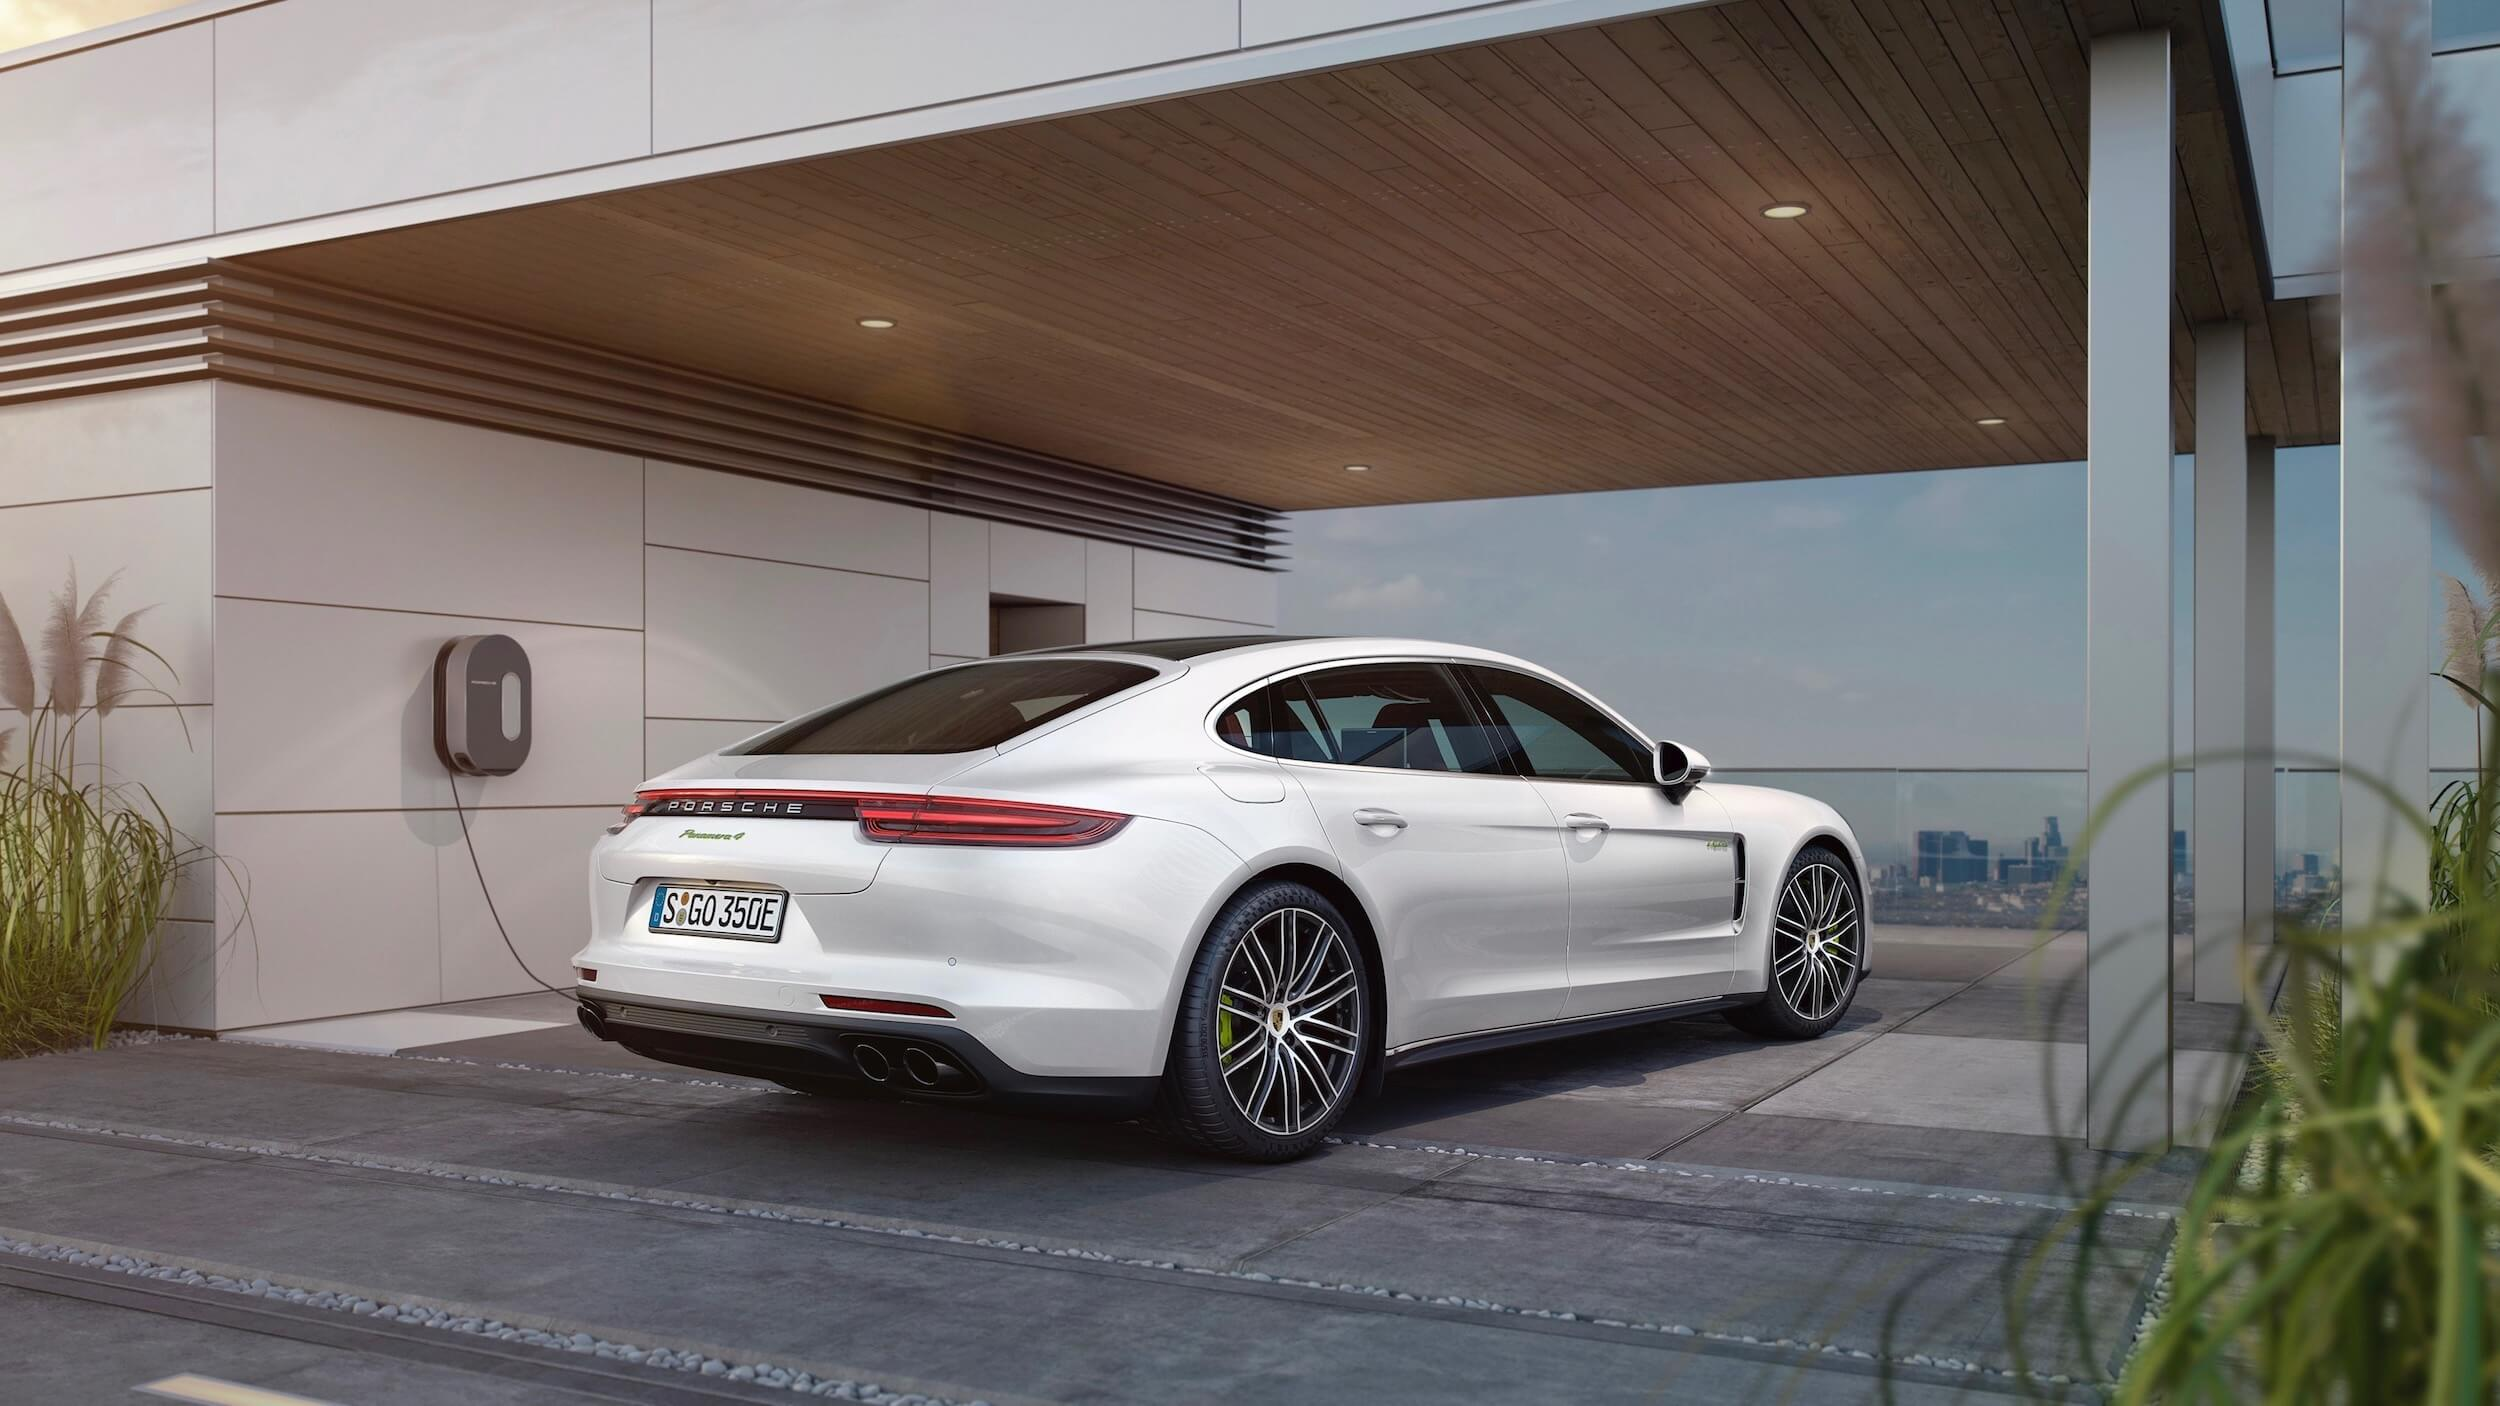 Porsche Panamera wallbox